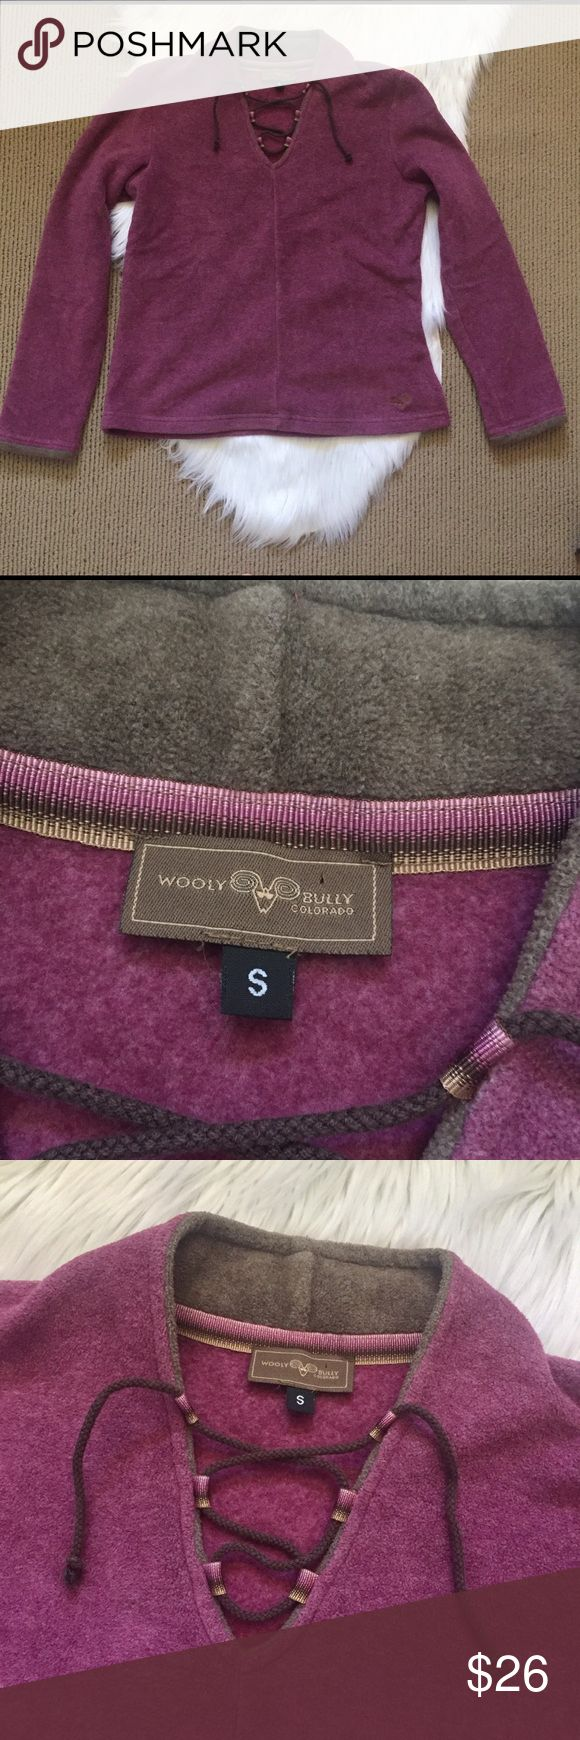 """Wooly Bully Colorado Fleece Pullover Jacket SO soft! Like new! Lace up v-neck polar fleece sweatshirt. Slightly fitted style. ▪️Size Small ▪️60% polyester 40% cotton. ▪️19"""" armpit to armpit and 23"""" shoulder to hem. ▪️A heather plum color. Wooly Bully Tops Sweatshirts & Hoodies"""